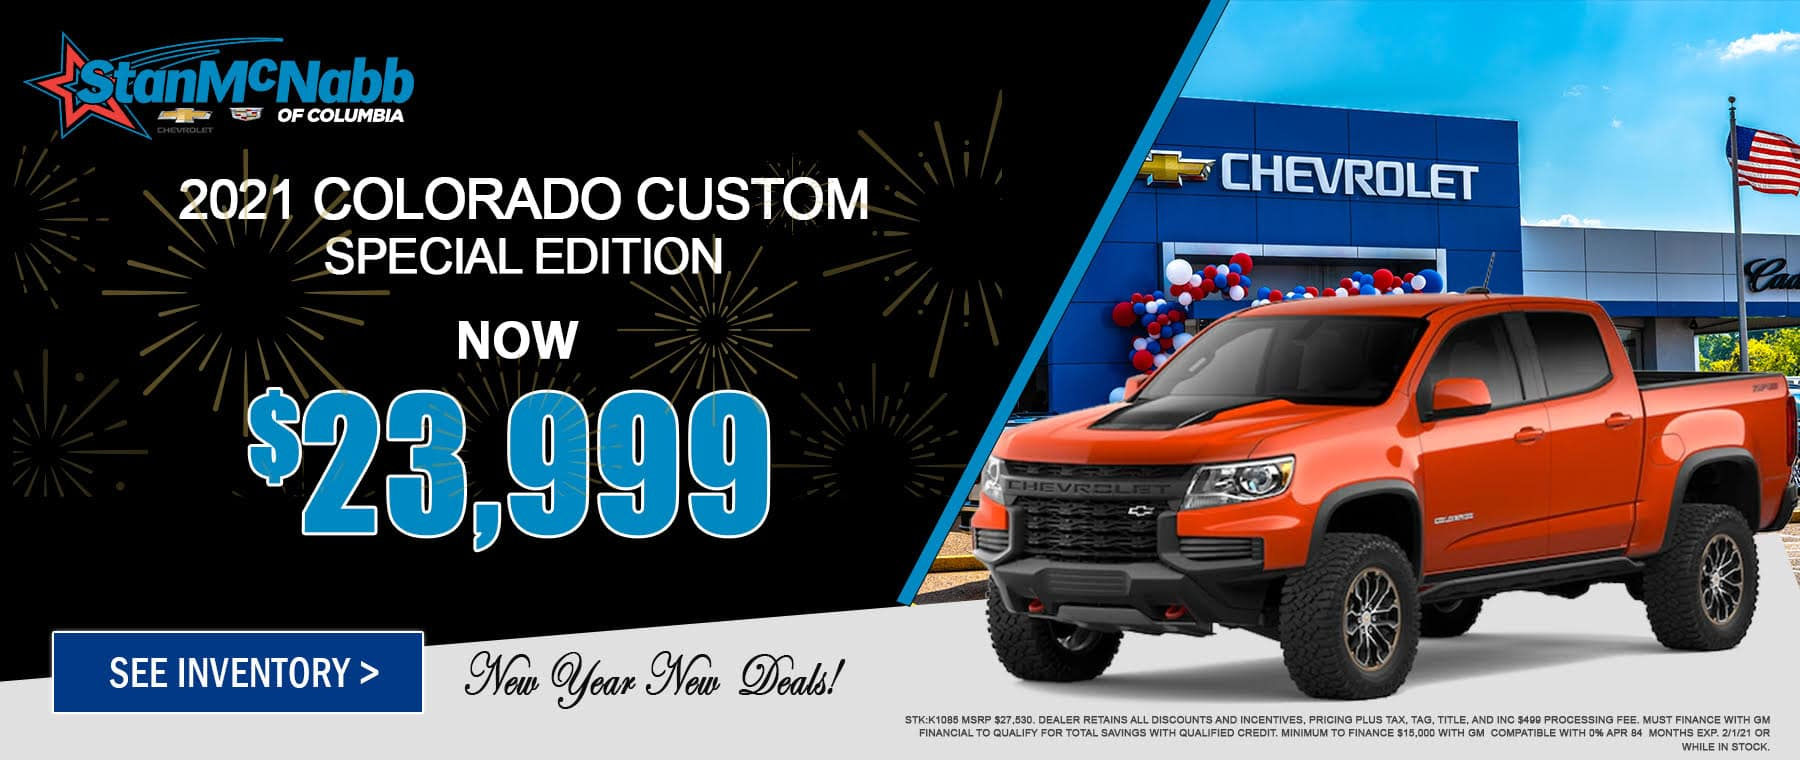 Lease special on the 2021 Colorado at Stan McNabb Chevrolet of Columbia